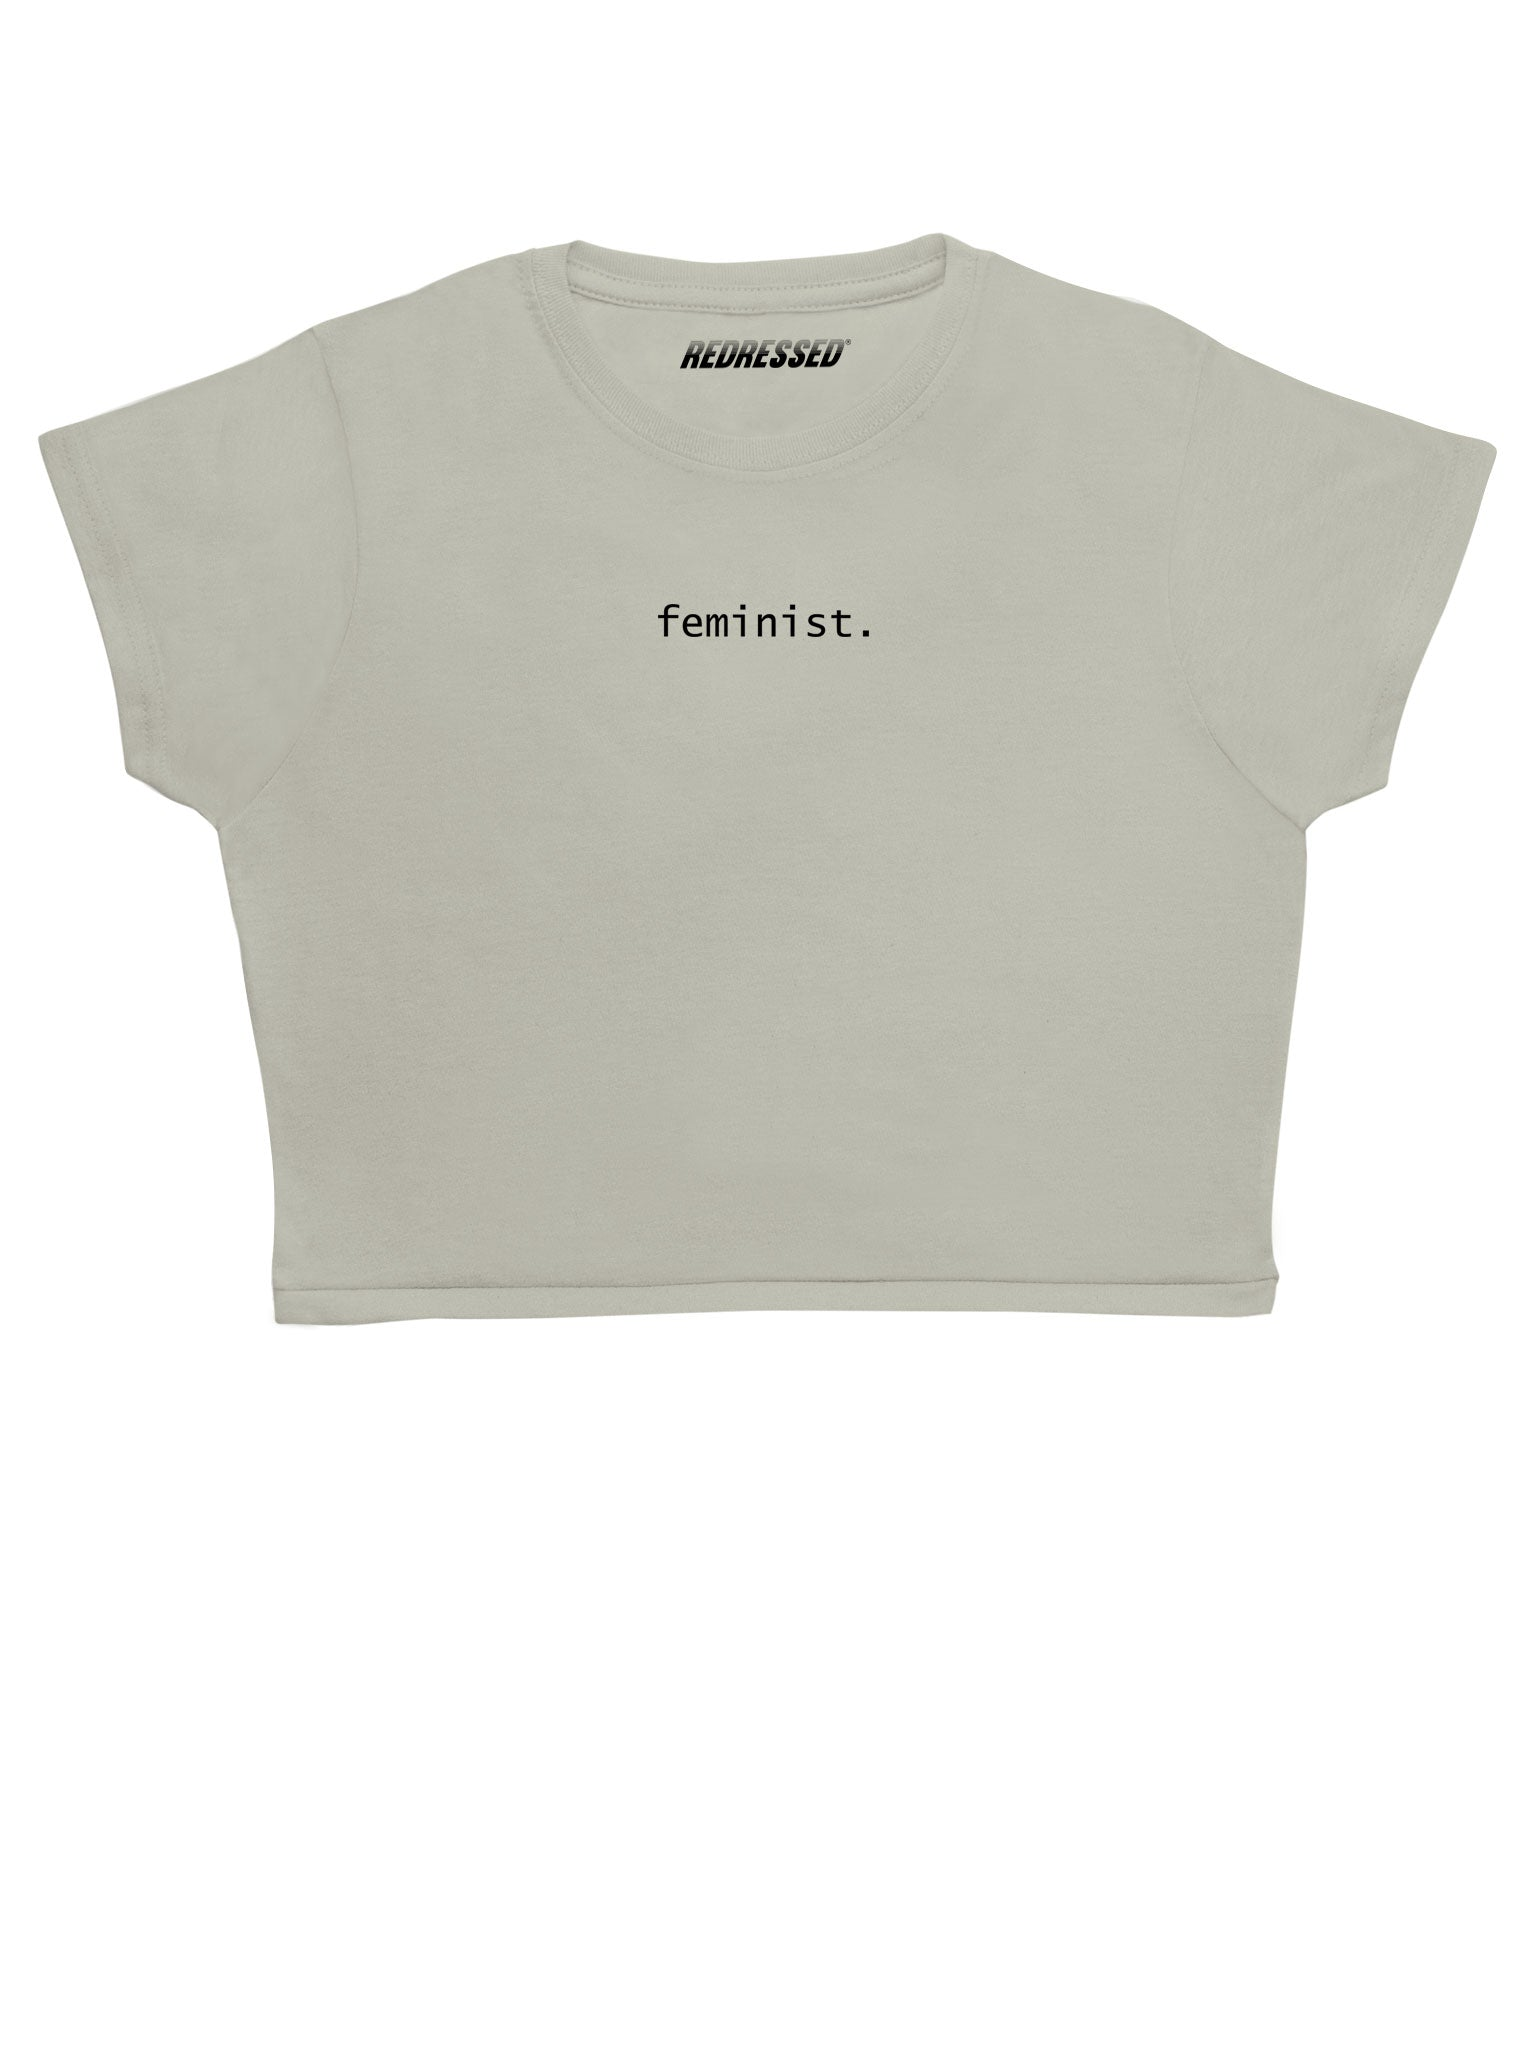 a5c87a2e0e3238 Feminist Crop Top – Redressed